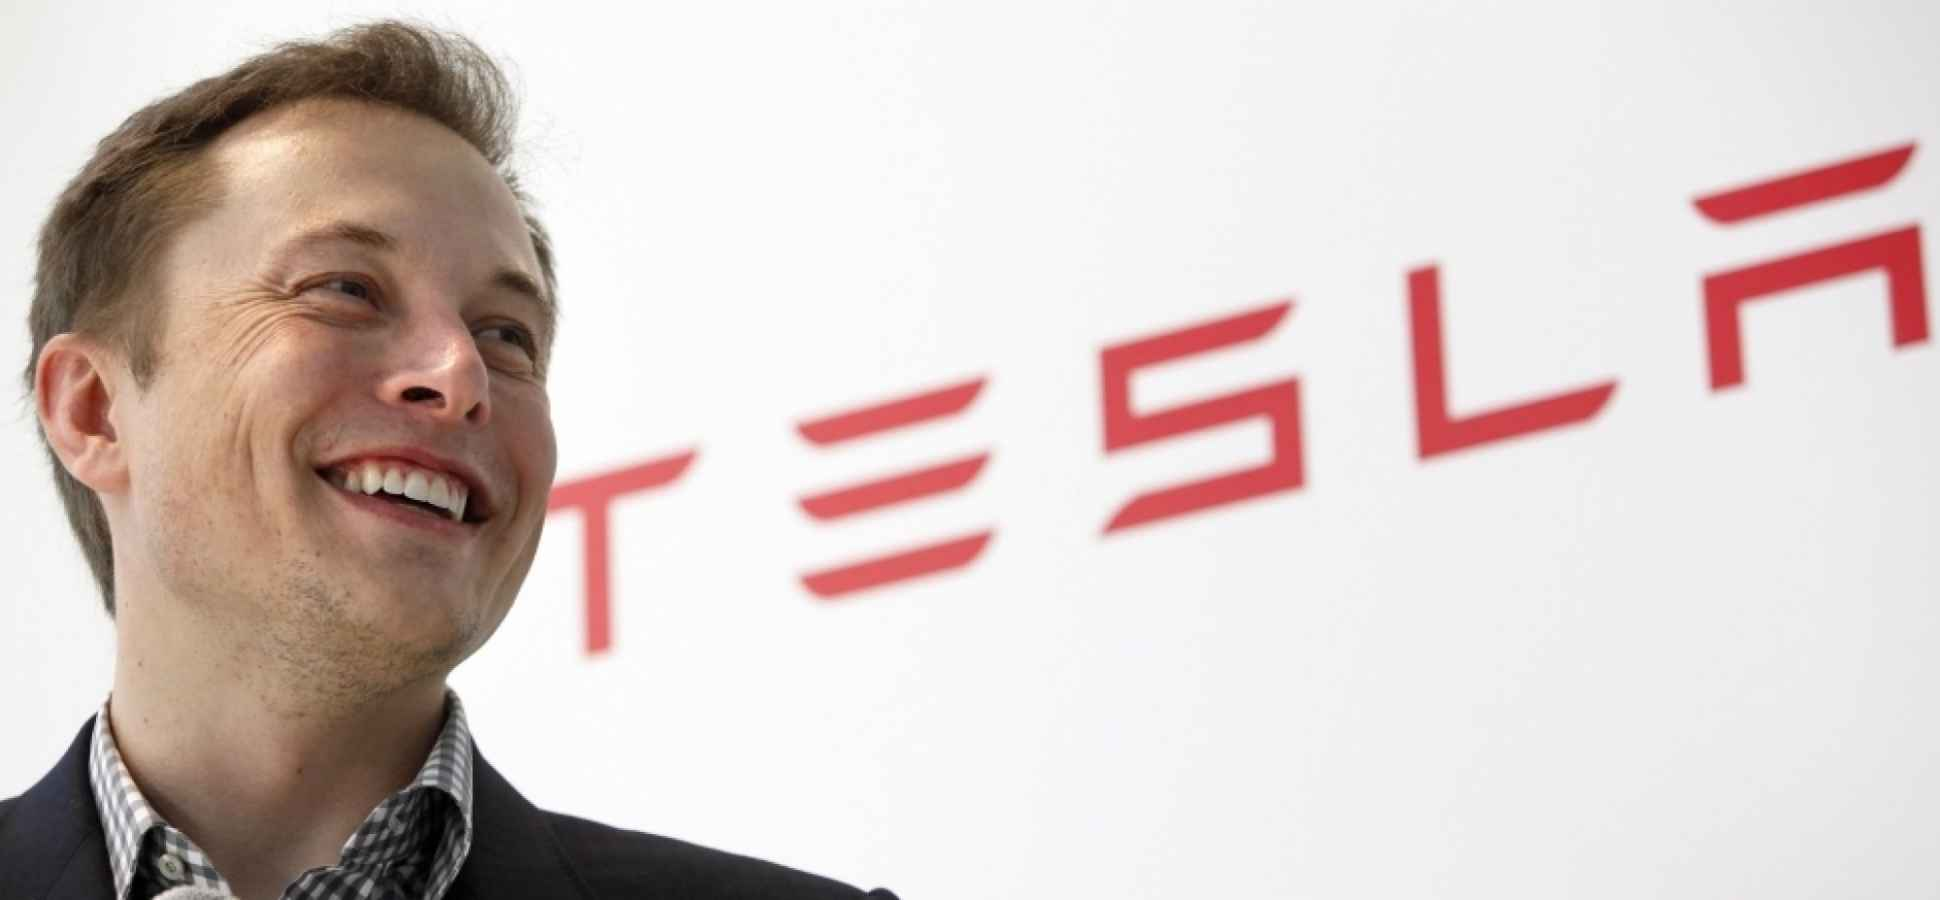 What Elon Musk, Steve Jobs, and Bill Gates Told Me About Getting Out of My Own Way